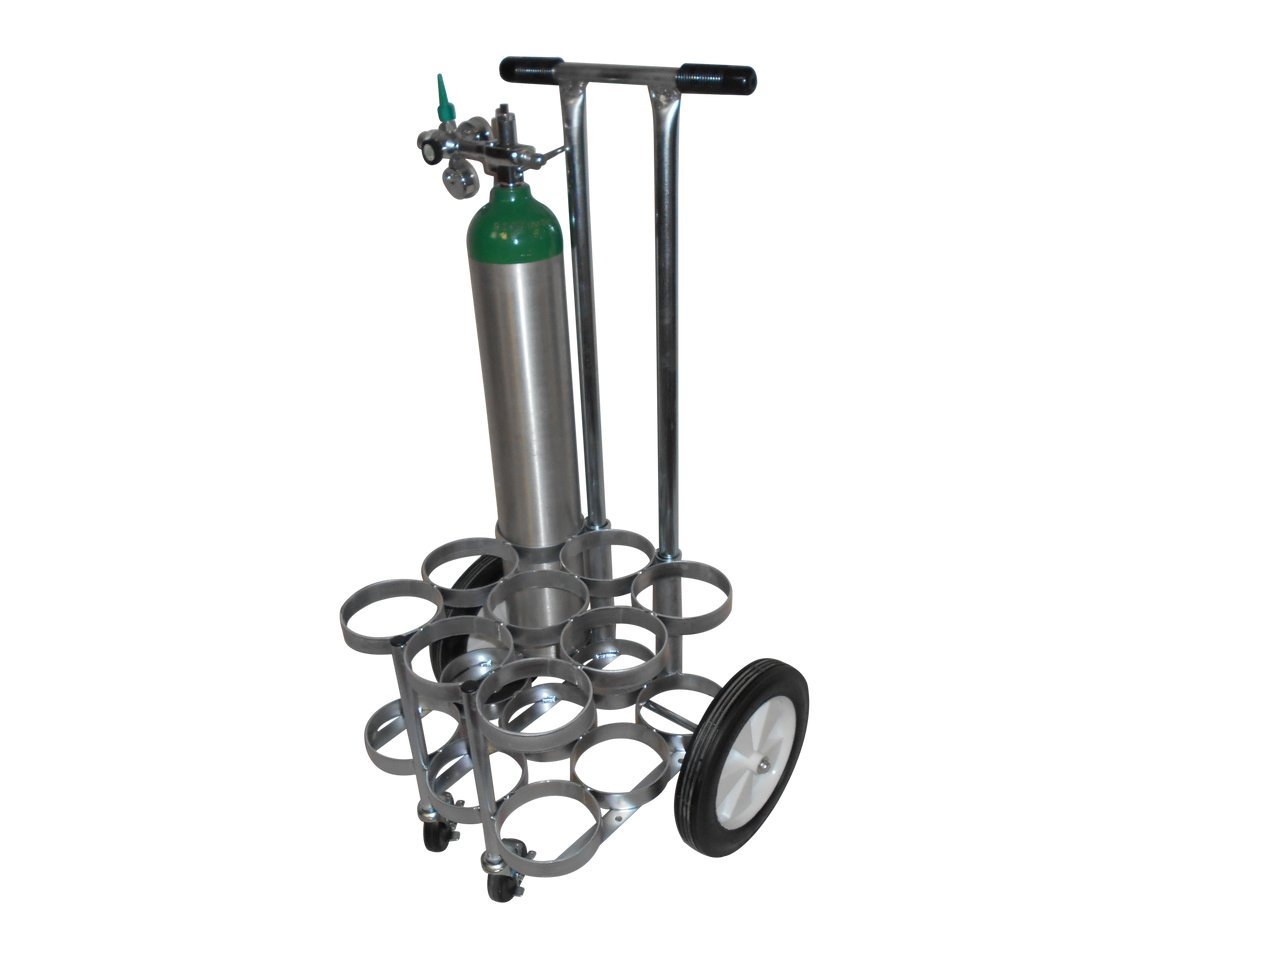 FWF OXYGEN 4-WHEEL ROLLING CART HOLDS 9 (D OR E STYLE) CYLINDERS DIAMETER 4.3'' MADE IN USA